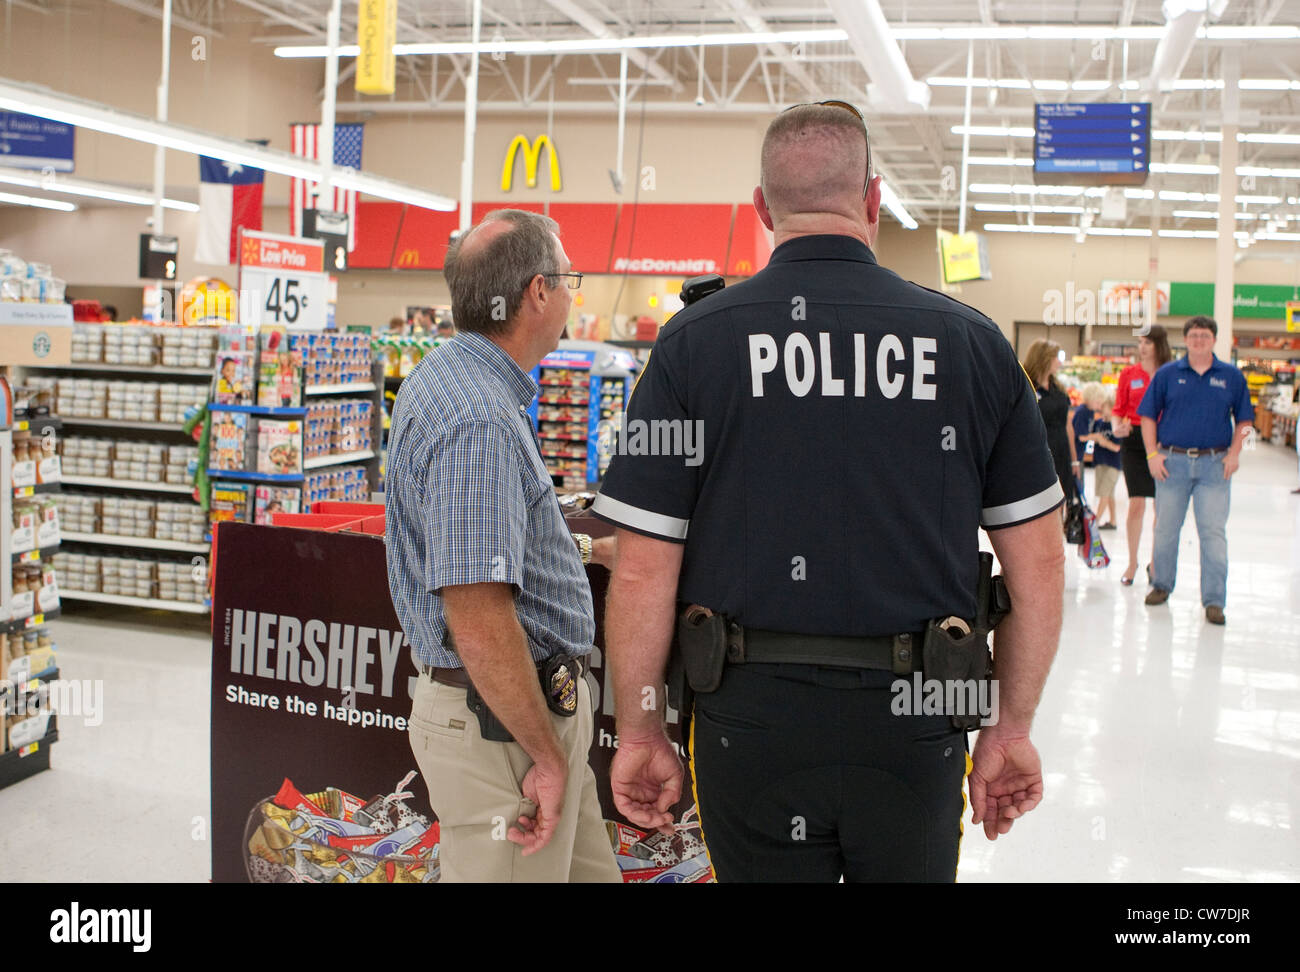 Law enforcement officials, police officer and detective in plain clothing patrol Wal-Mart Supercenter in San Marcos, - Stock Image